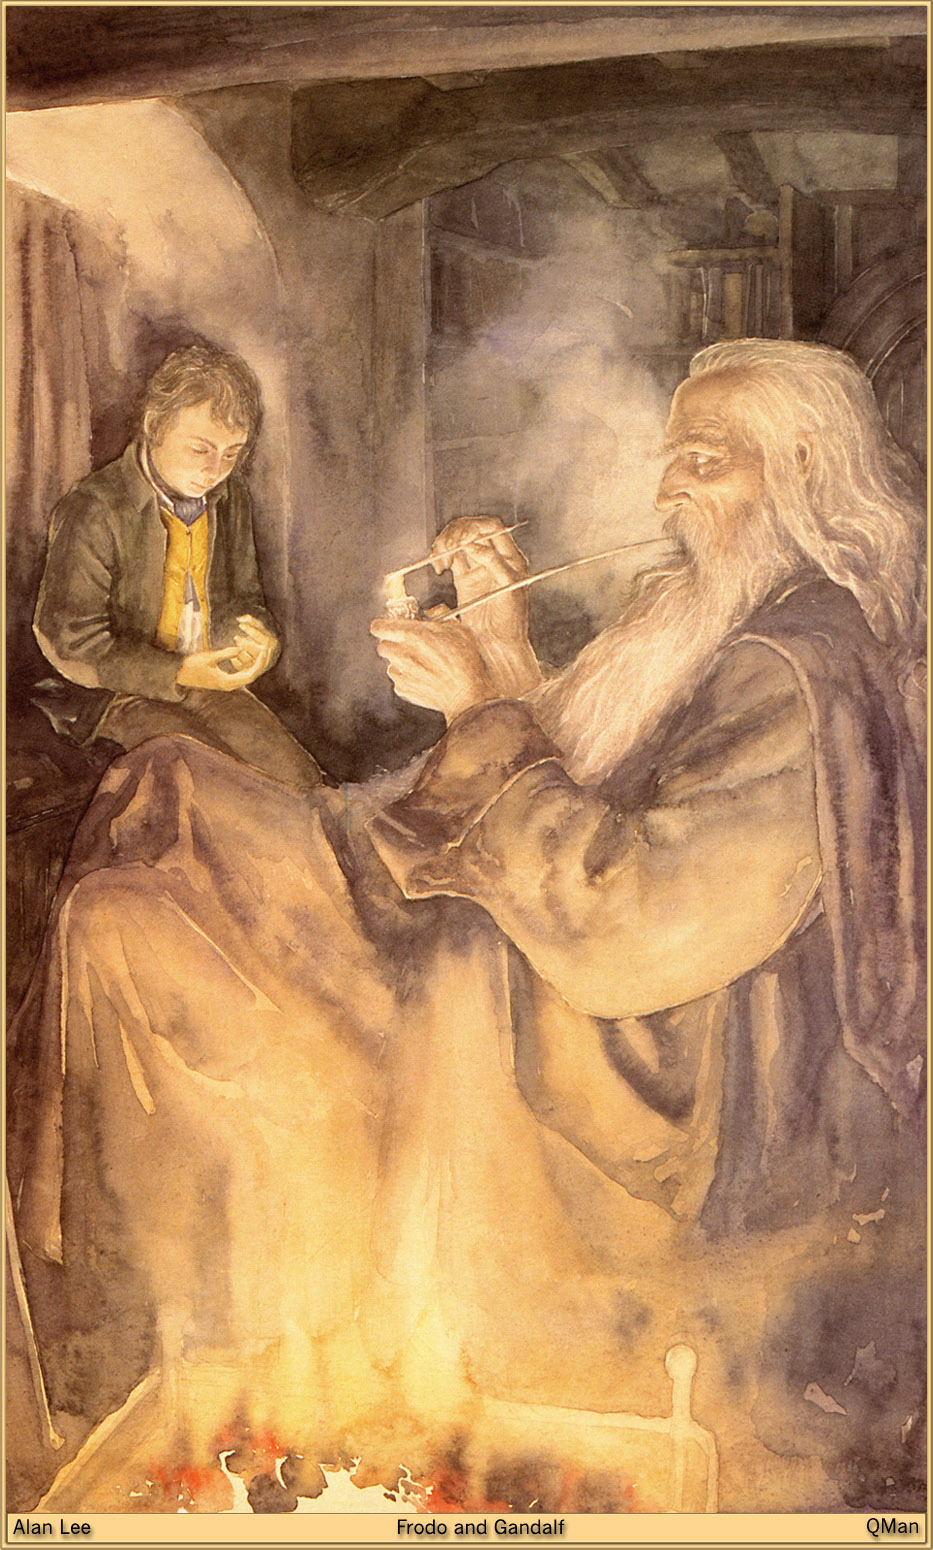 Lord Of The Rings Tarot The Hermit By Sceithailm On: Lord Of The Rings: The Fellowship Of The Ring